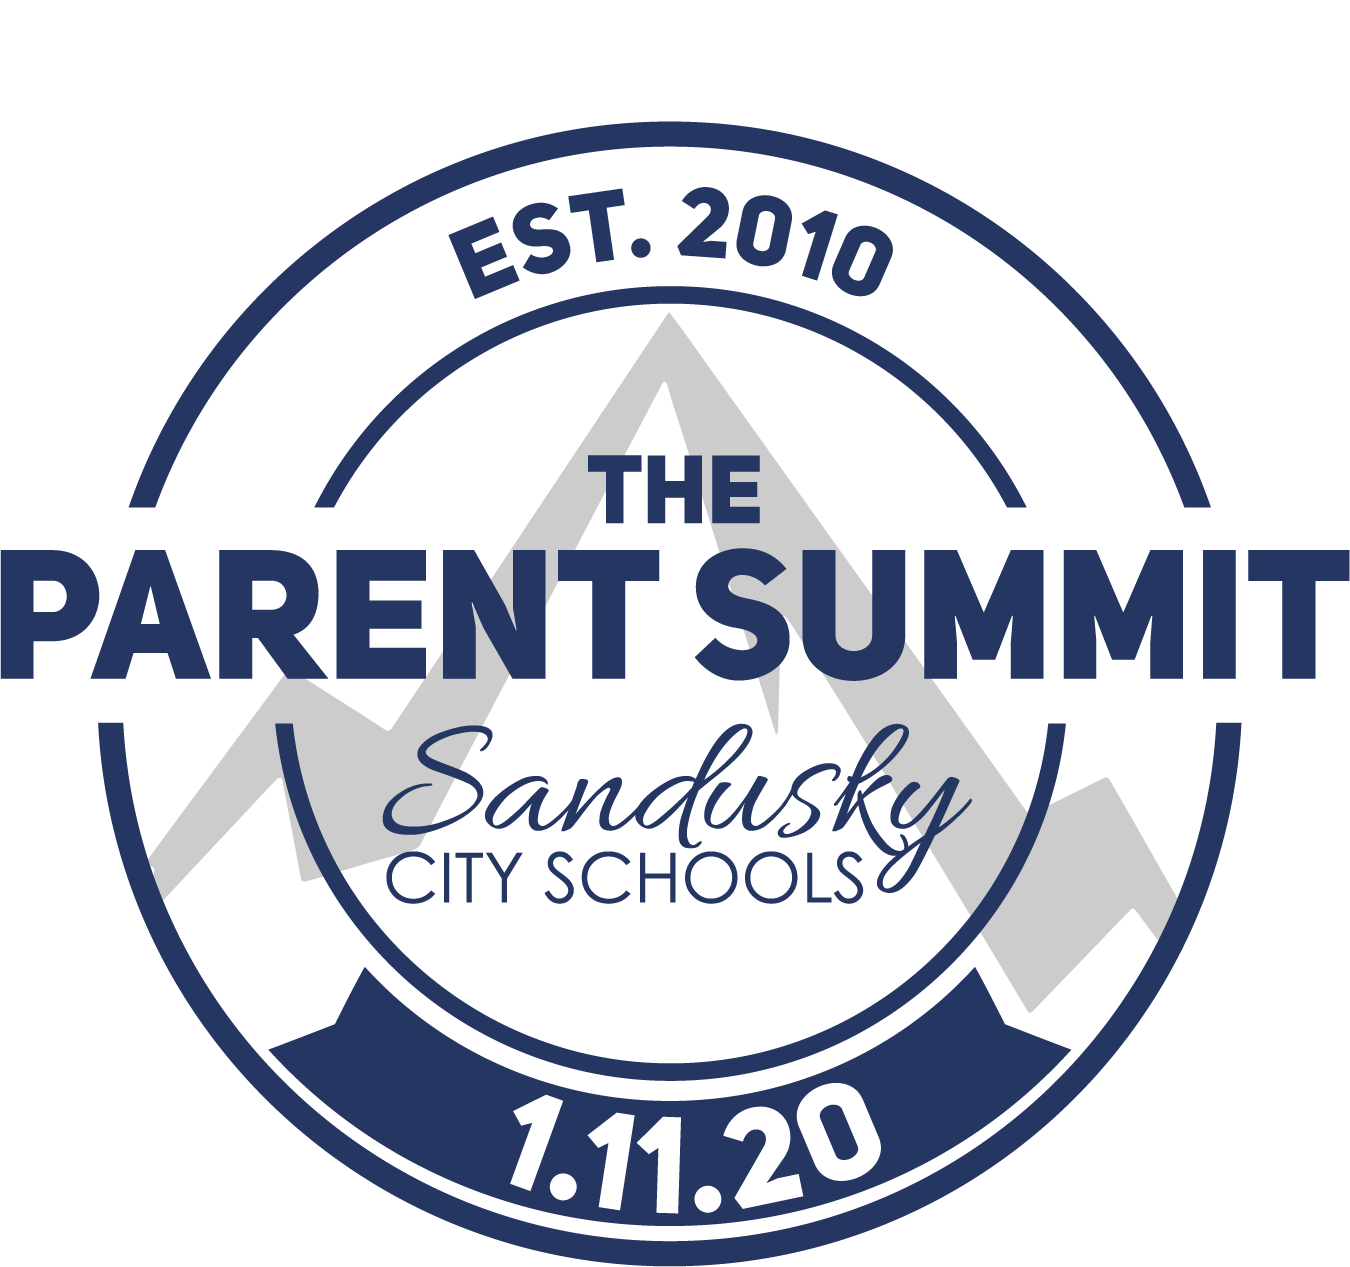 The Parent Summit Logo